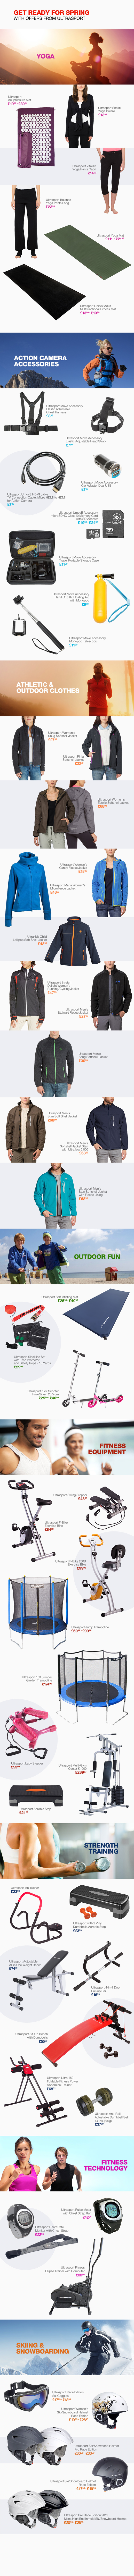 Get ready for Spring with offers from Ultrasport